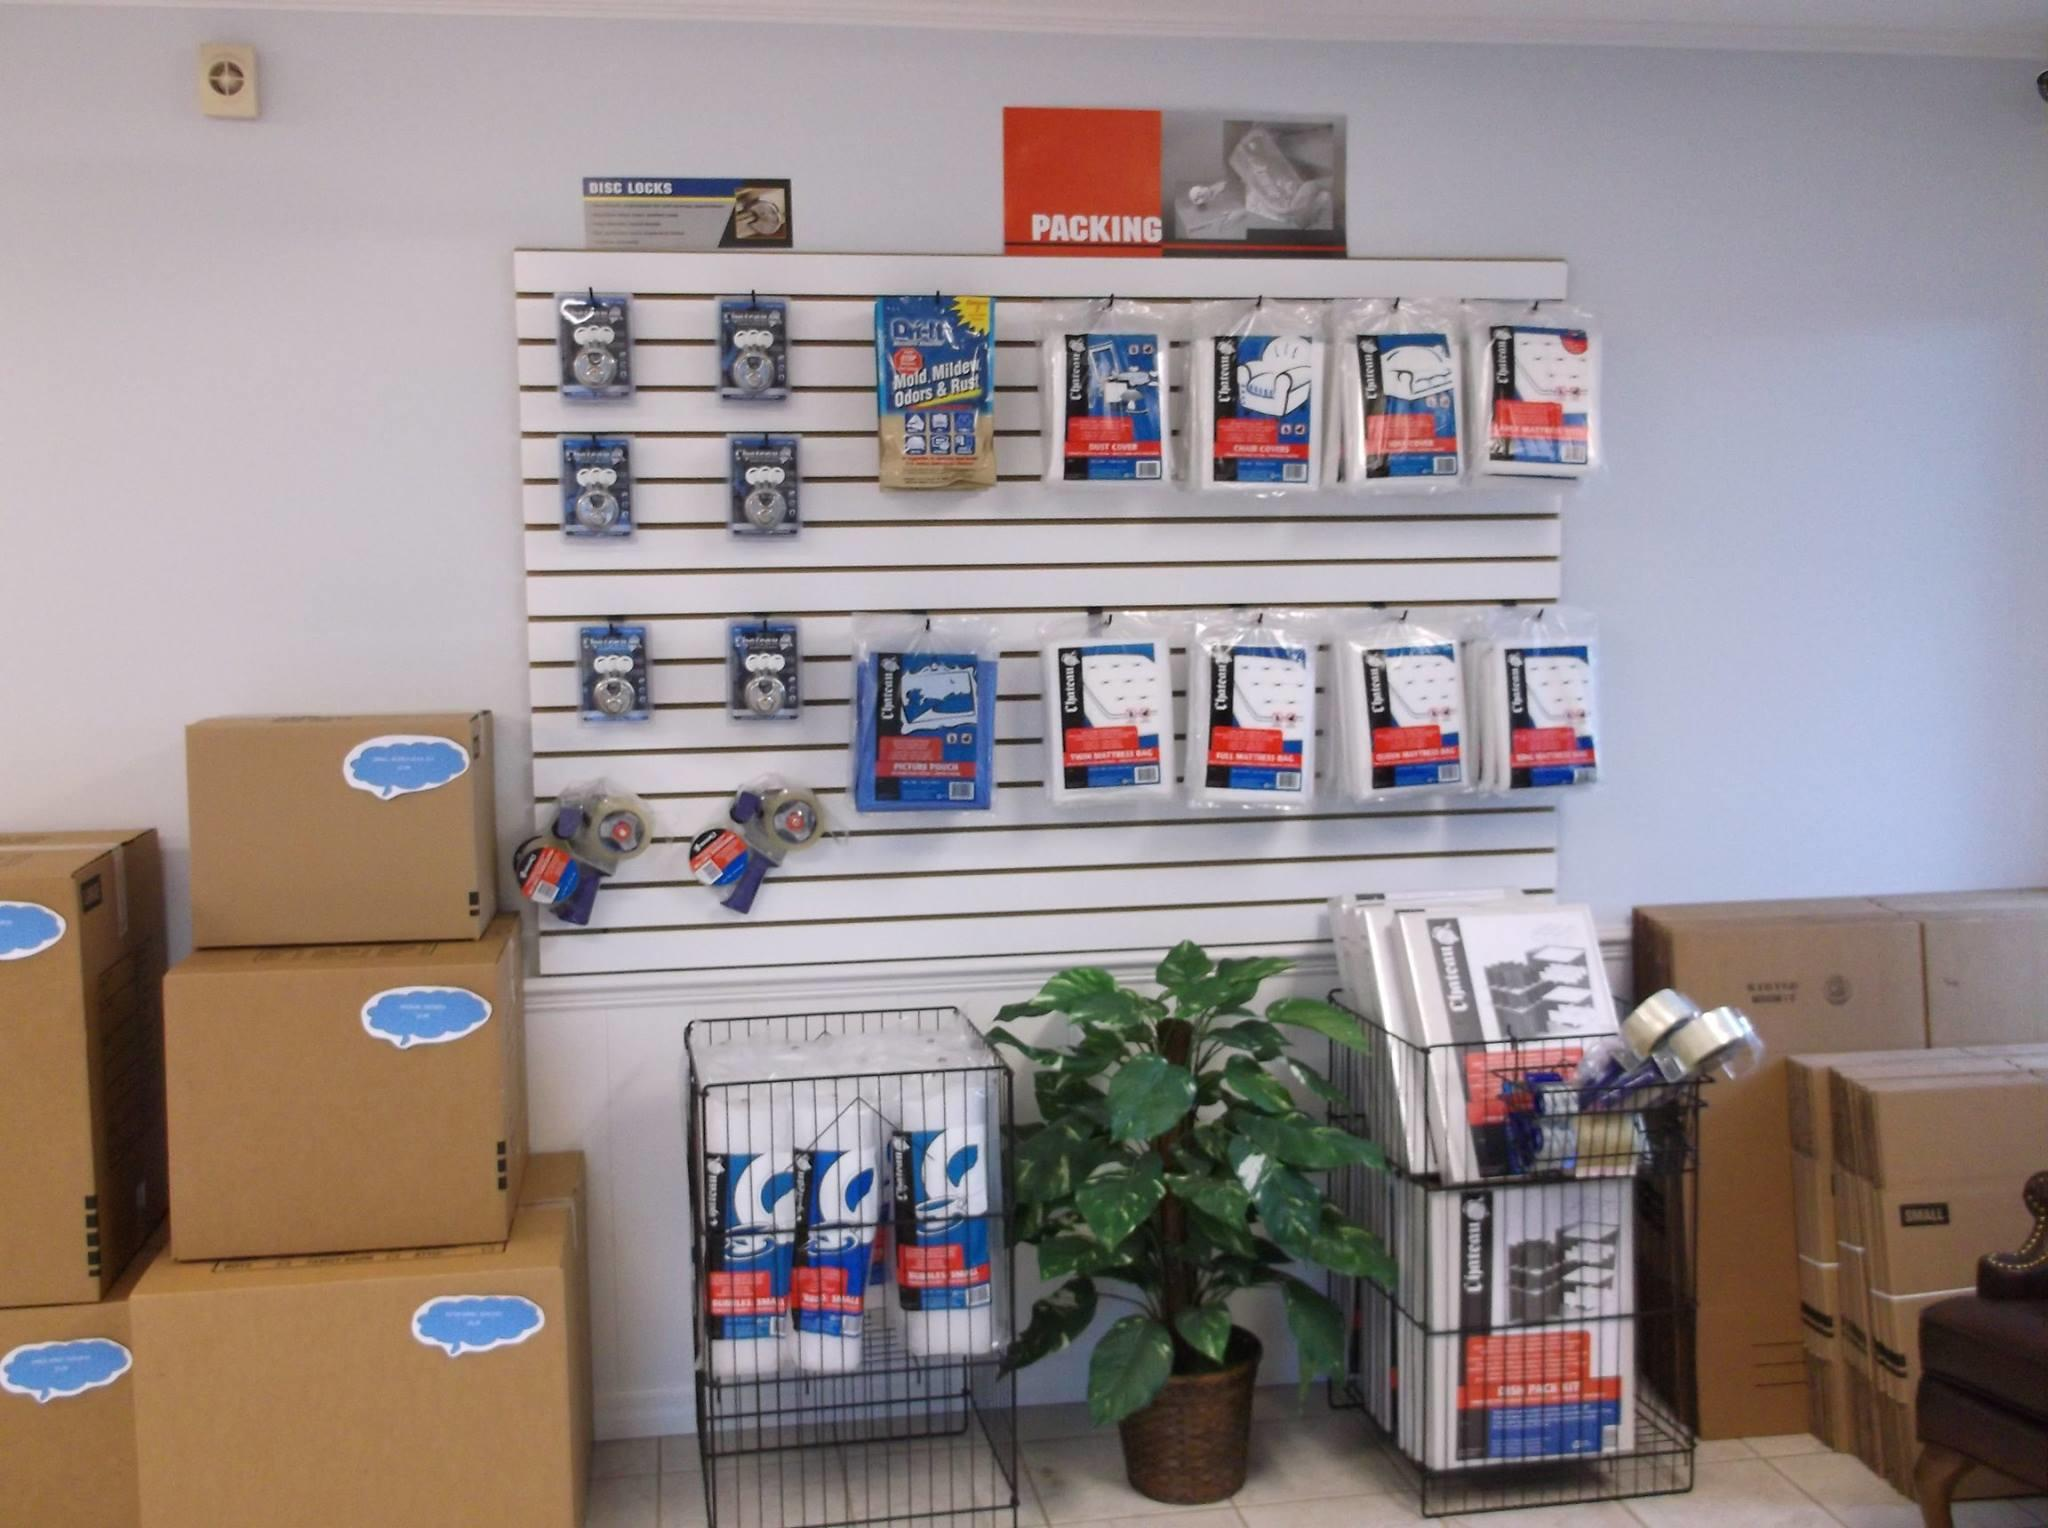 Moving & Packing Supplies Sold Onsite  FedEx Pack and Ship Center